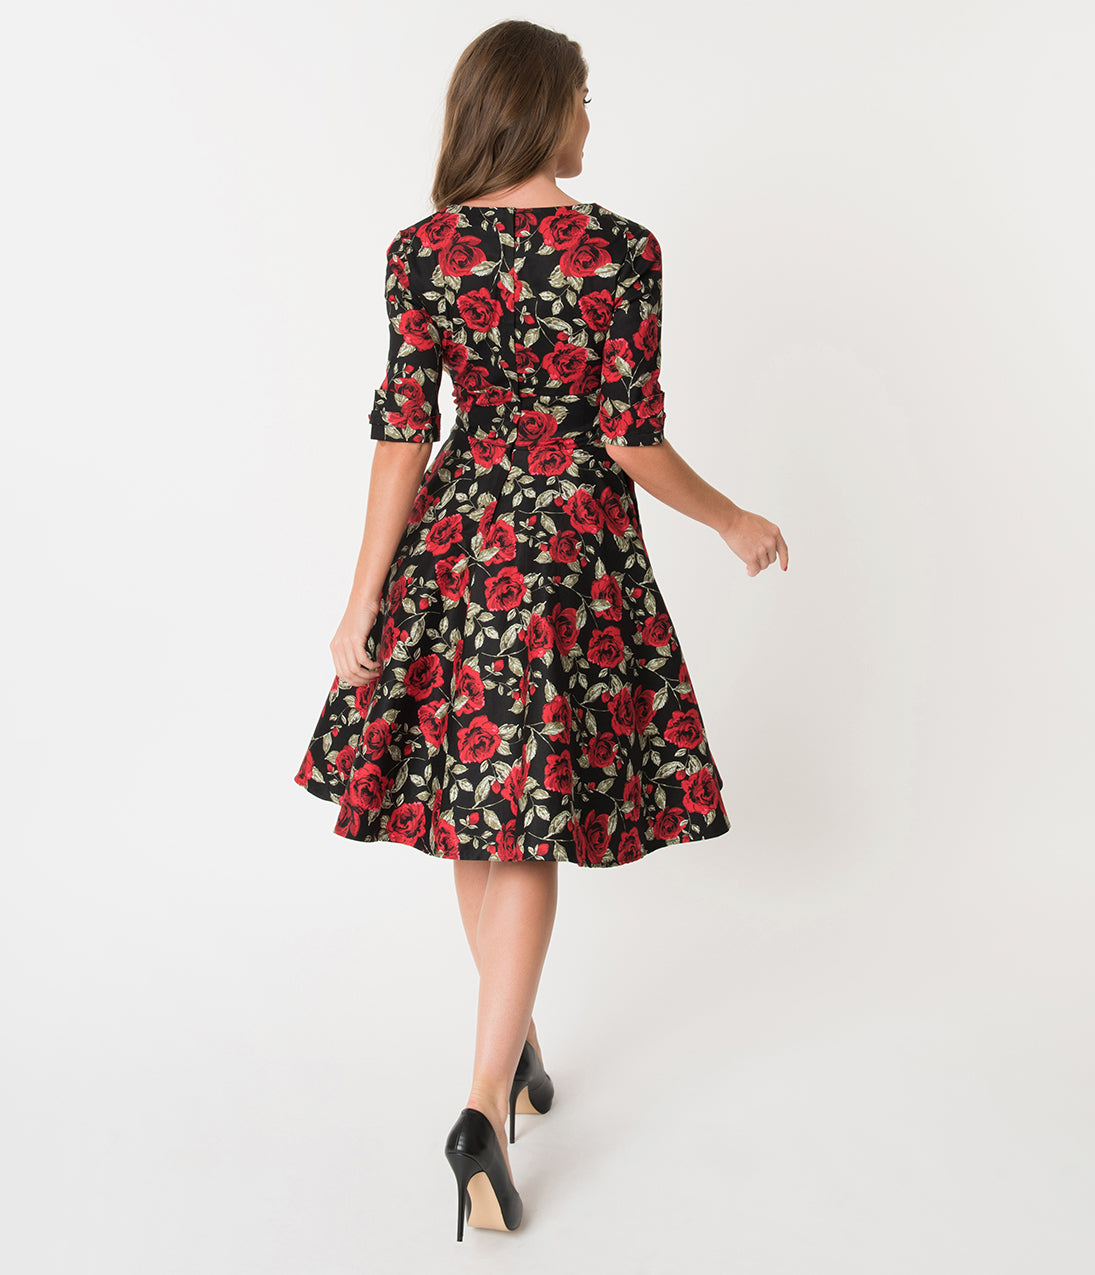 8d7d9e2e5aec Unique Vintage 1950s Black   Red Roses Print Delores Swing Dress with  Sleeves